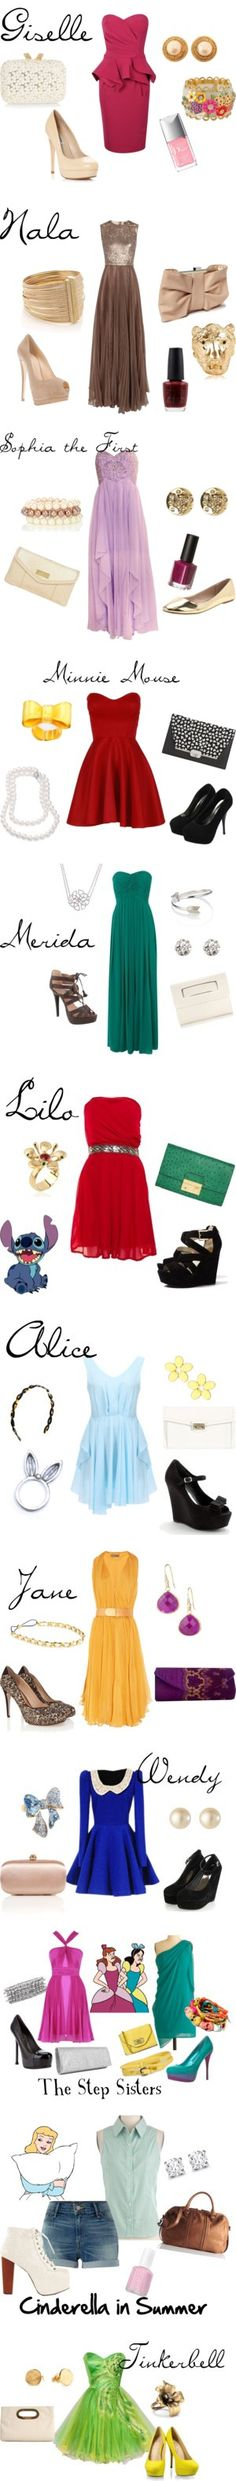 """""""Modern Princess"""" Lilo, Alice, Jane, and Cinderella (those high-waist shorts and sleeve-less button-up...LOVE) are great for summer"""